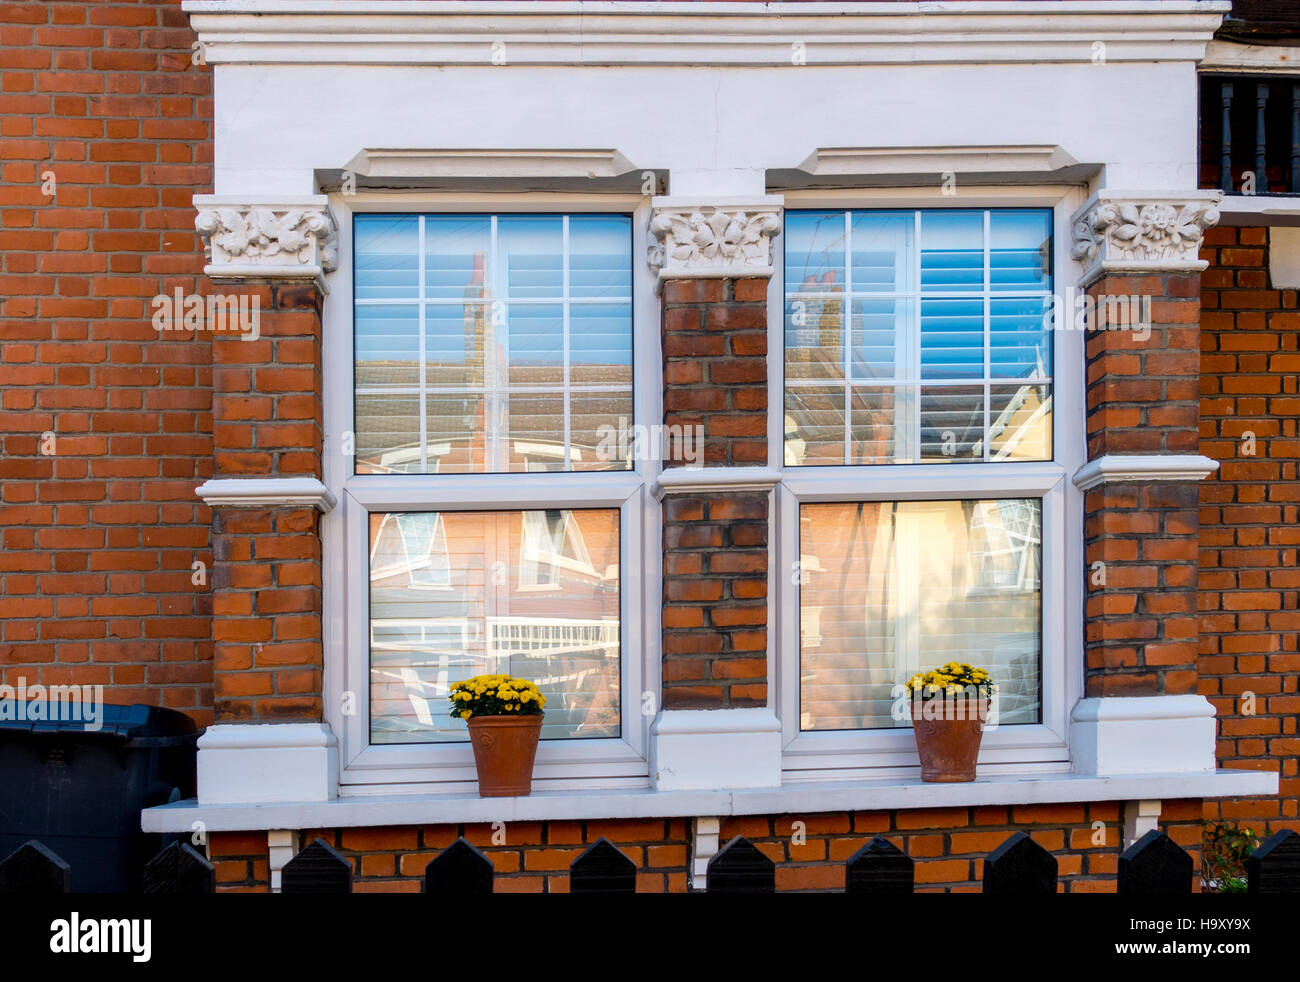 A typical London Edwardian era house with plats on the window cill - Stock Image